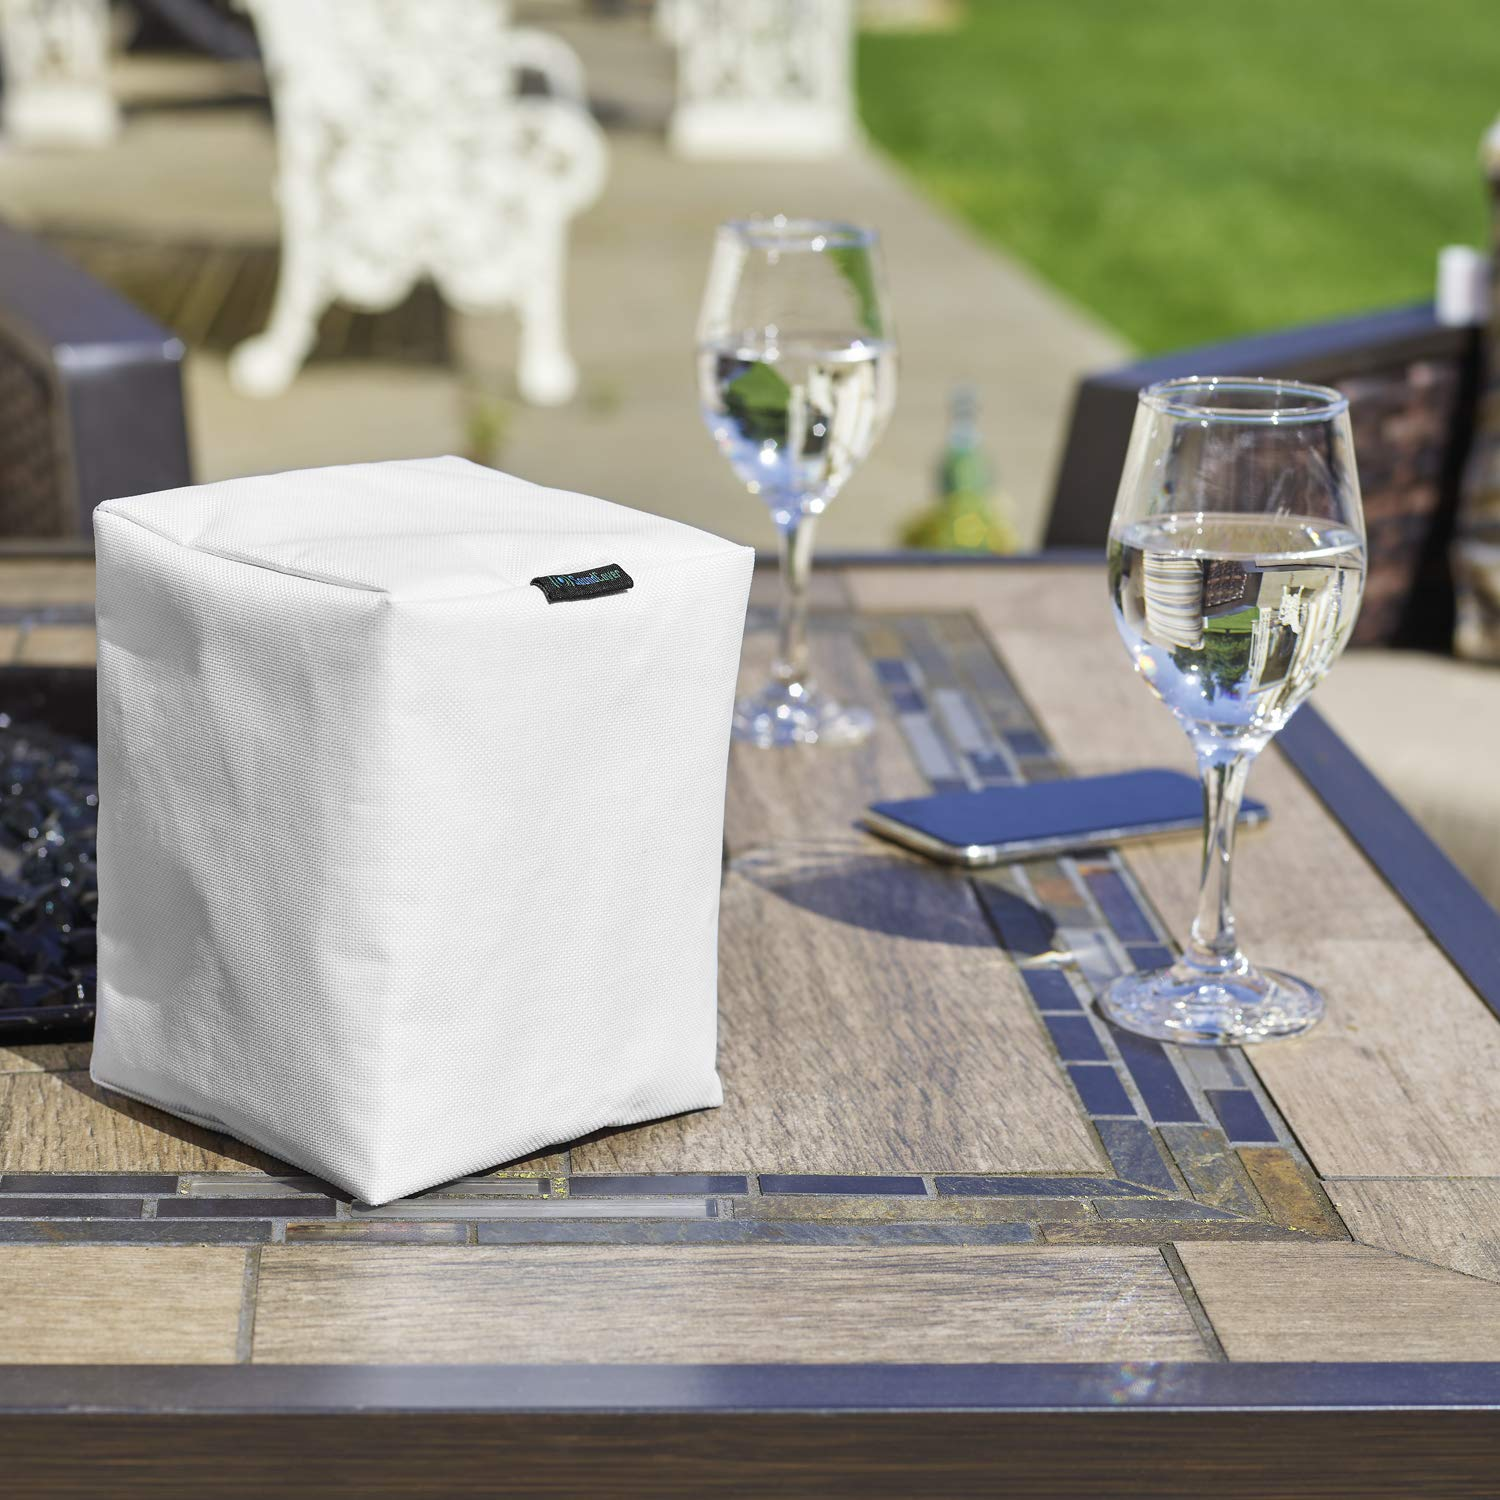 1 Will fit on Mounted Speakers Black Sonos Speaker Cover for Water Dust and Sun Protection Covers for Sonos Play:1 and Sonos One Single